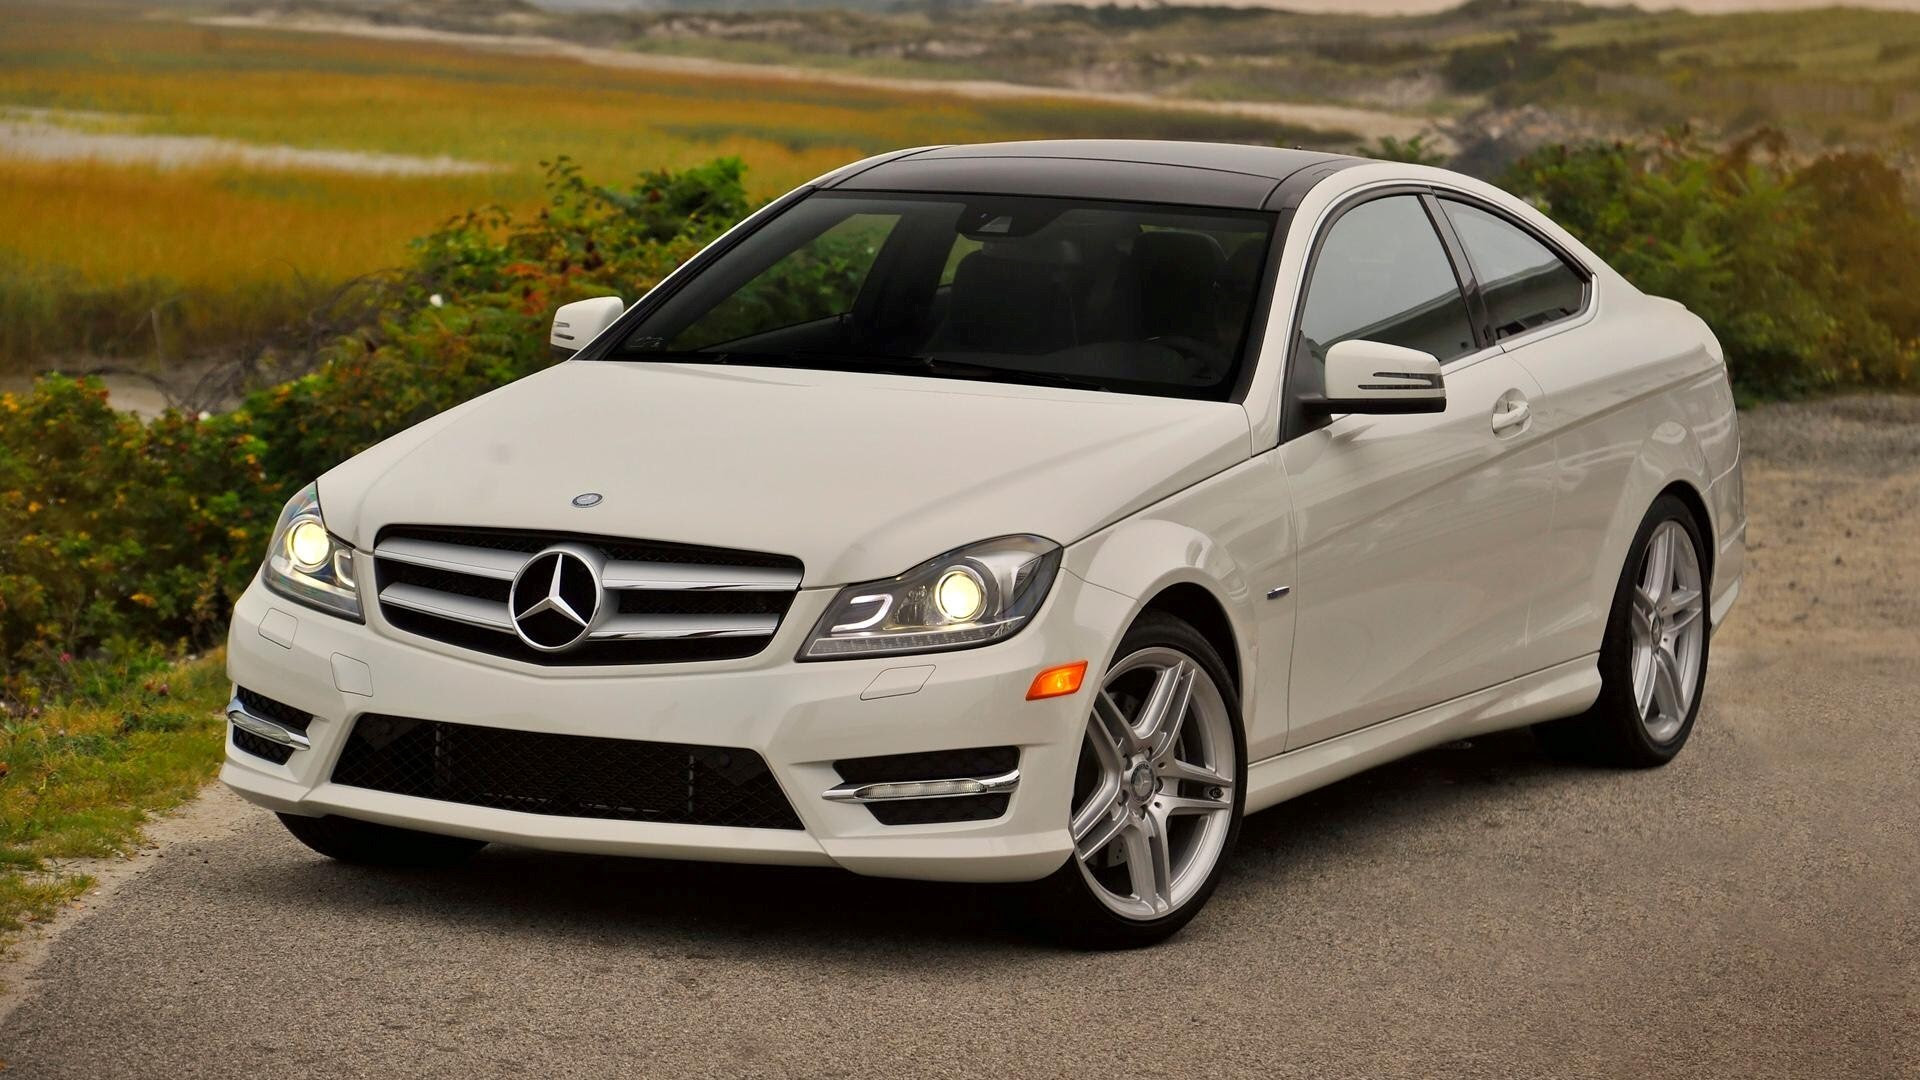 White Mercedes Benz C350 Coupe C Class Car Wallpaper HD Wallpapers